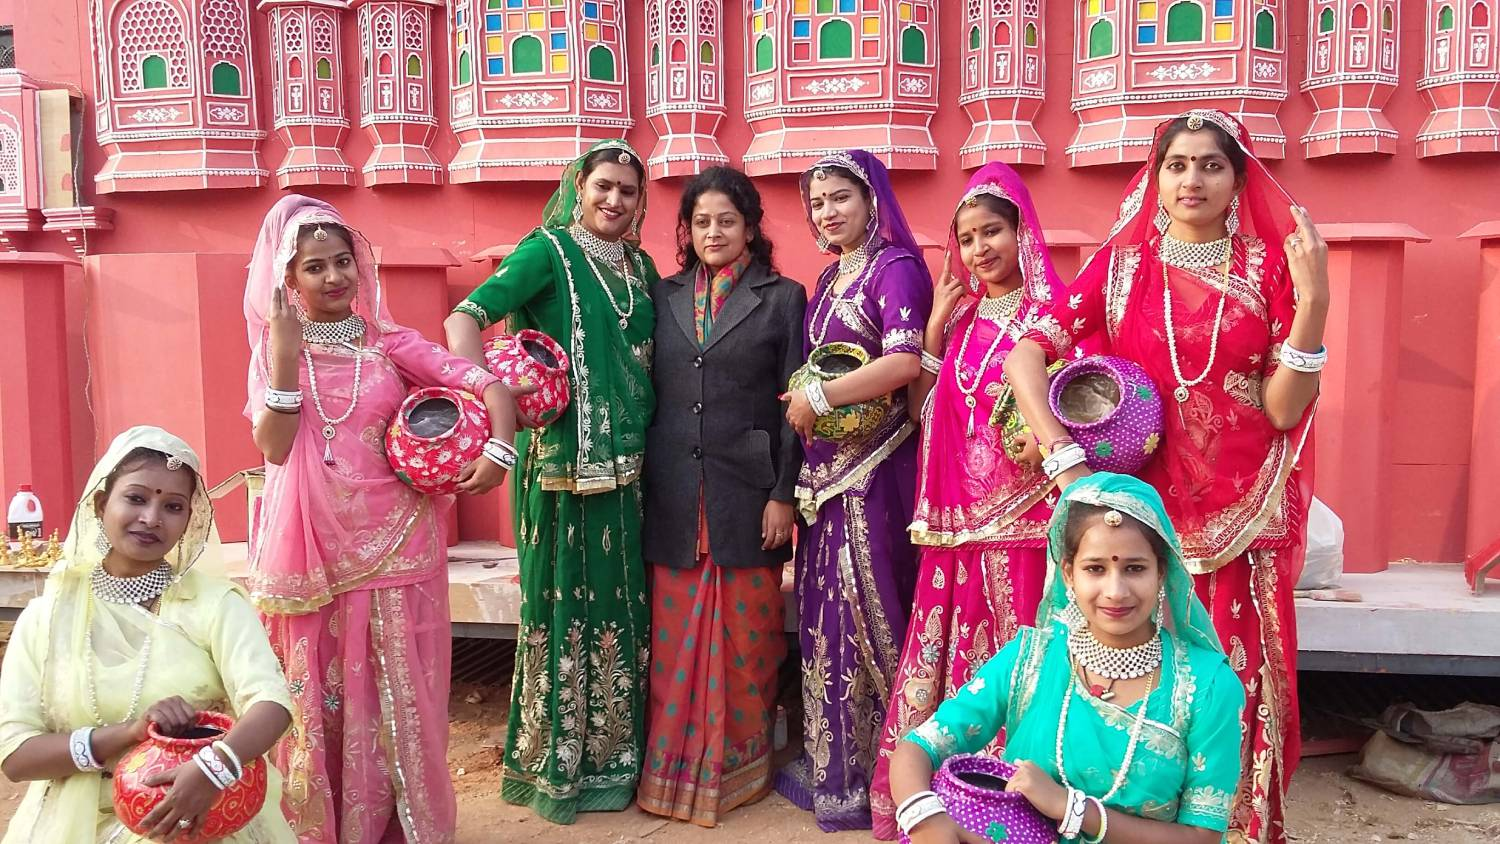 Rajasthani Music and Dance Group Jaipur